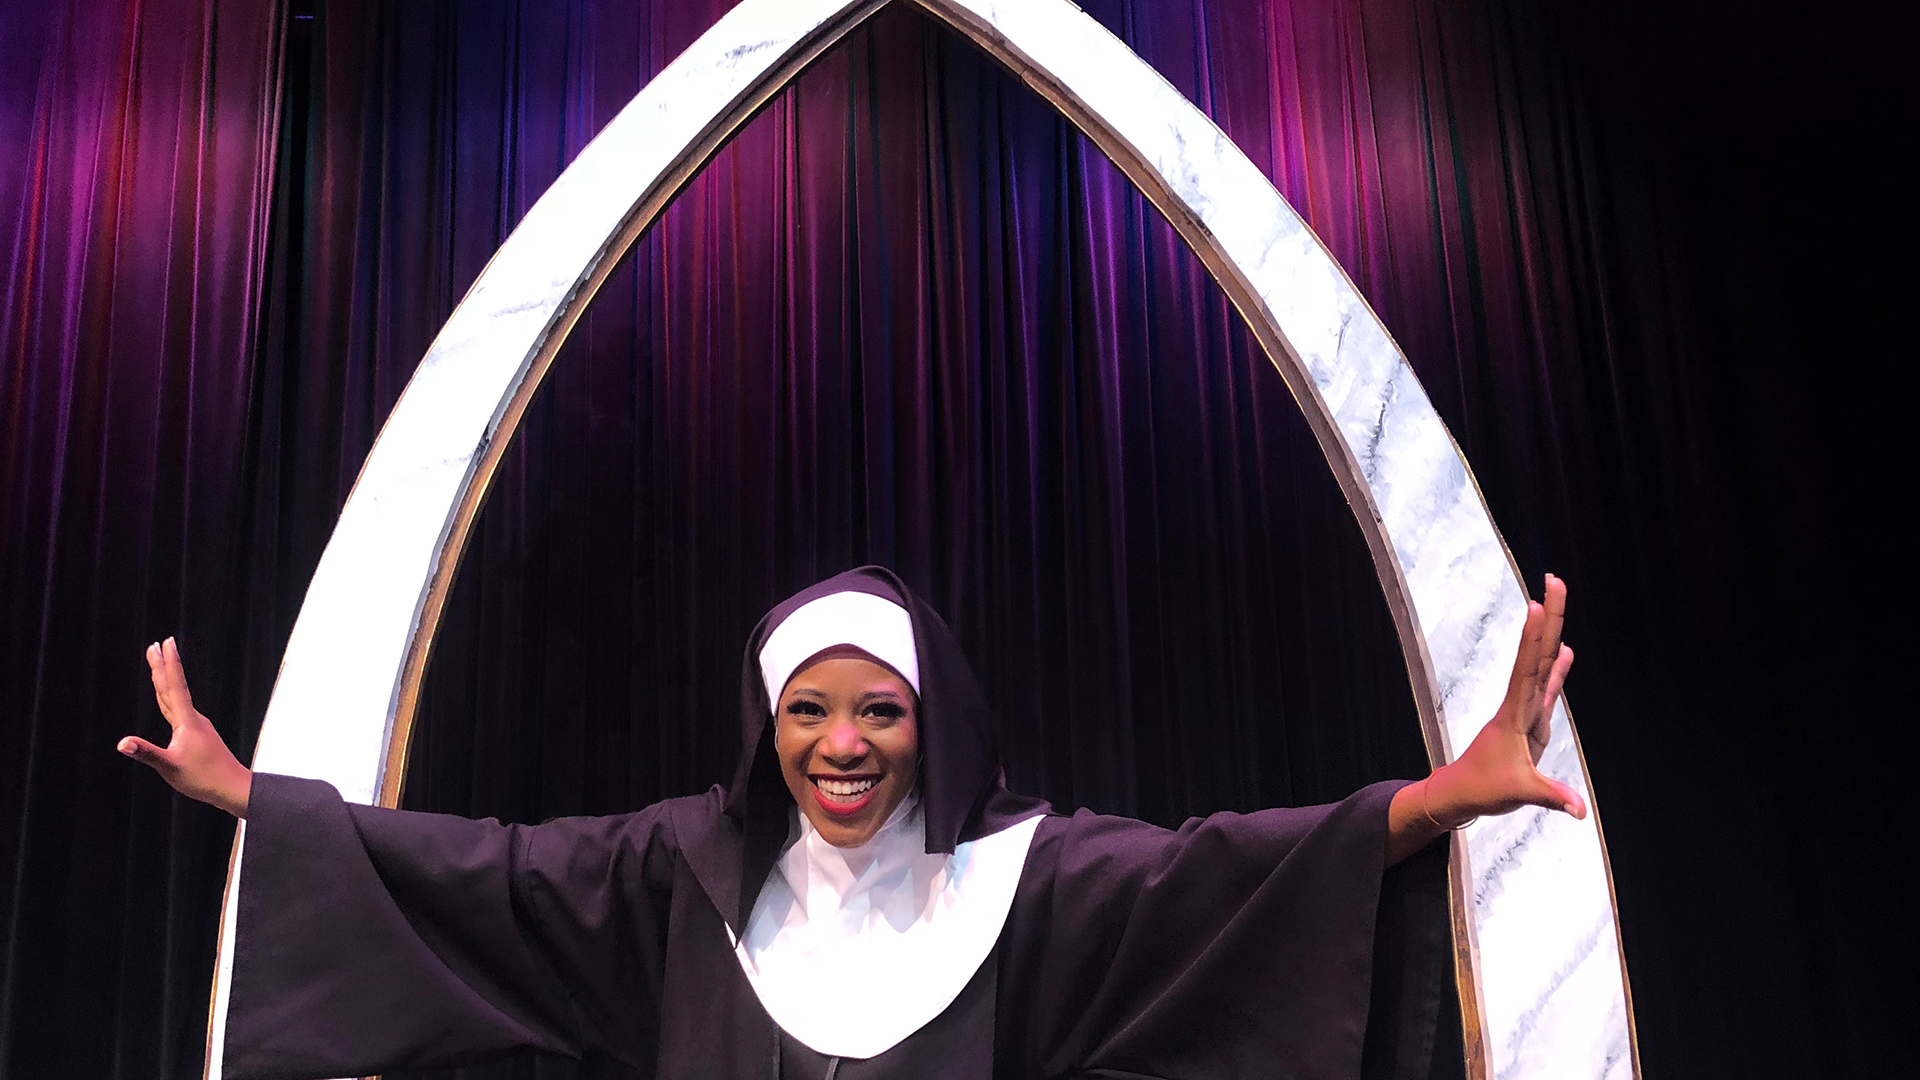 ALT hopes to take audiences to heaven with 'Sister Act' musical